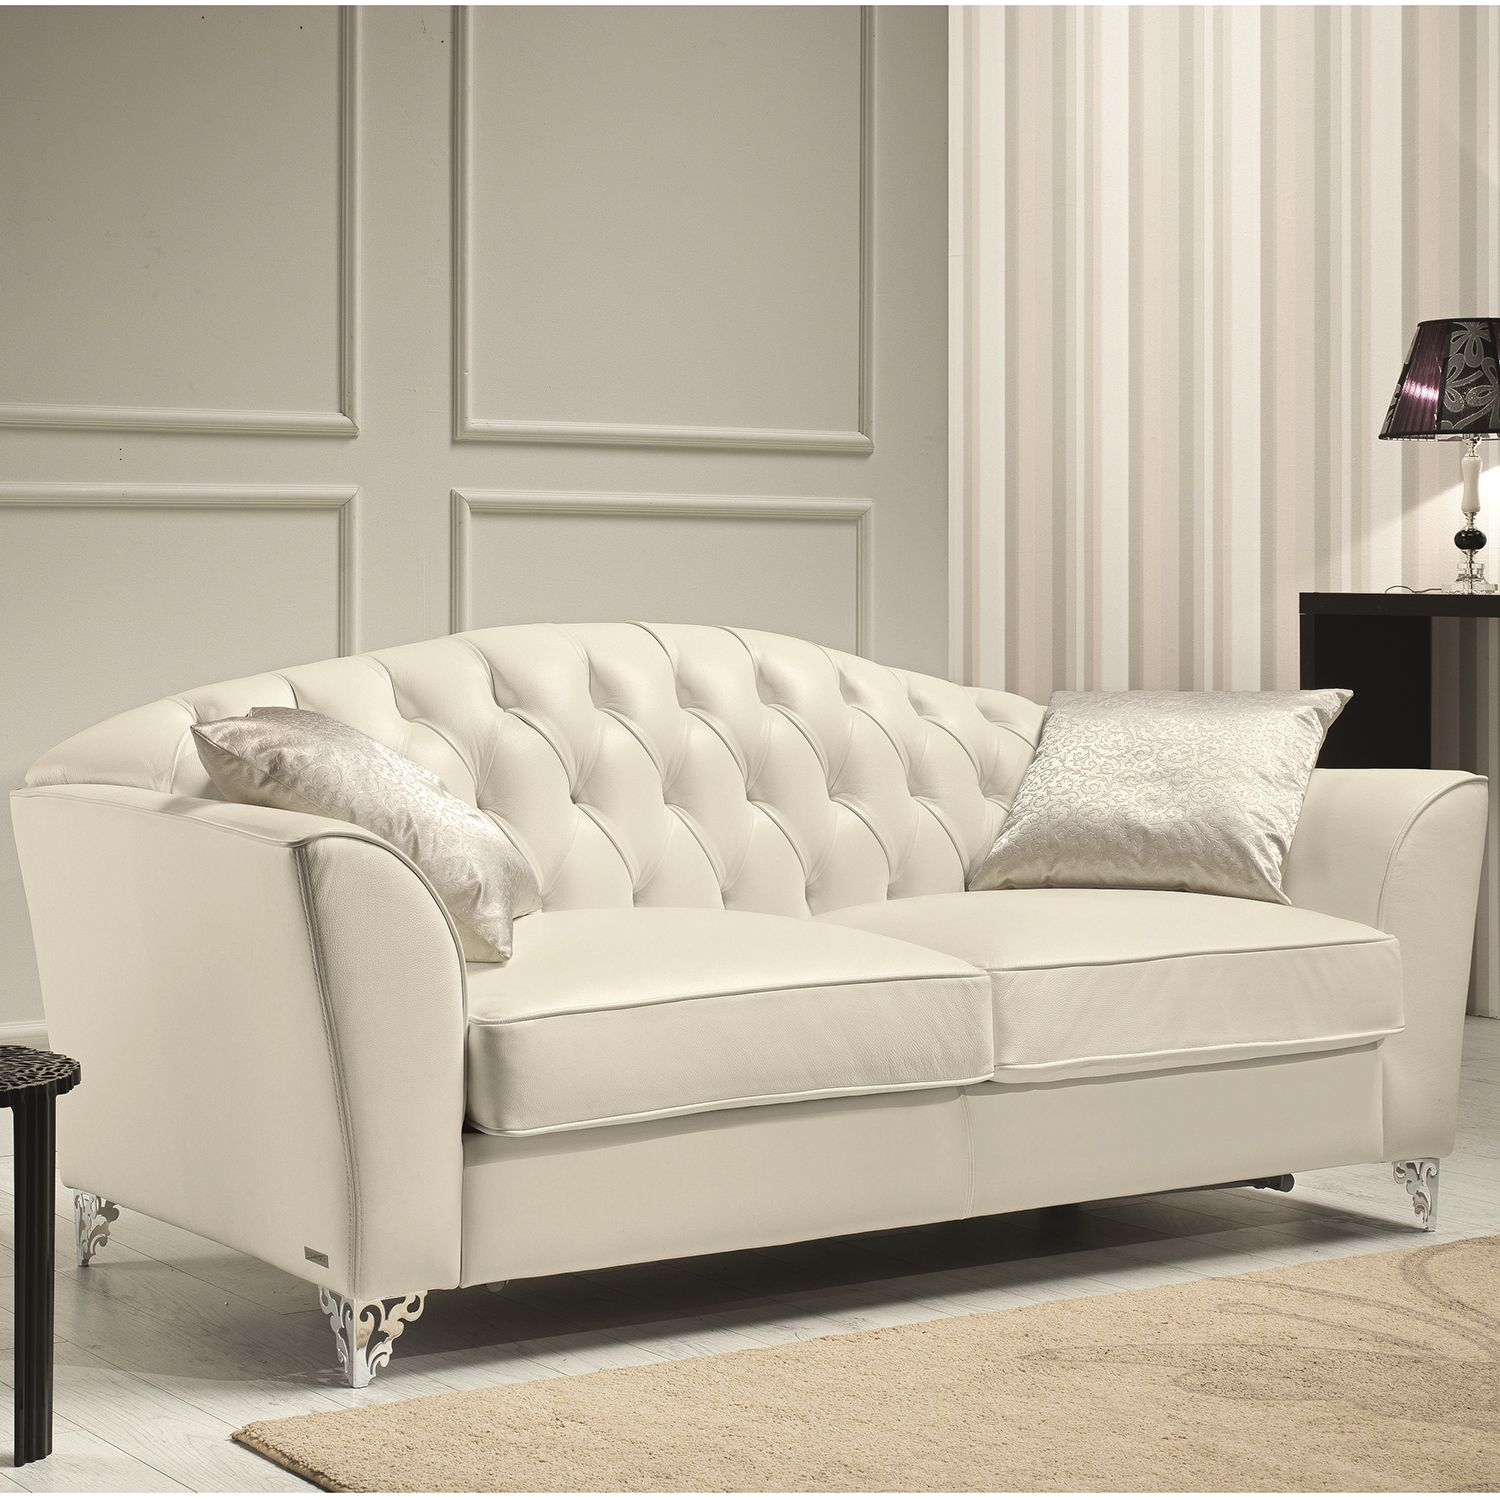 Divina Loveseat In Tufted Top Grain Italian Leather W Ornate Legs By J And M Furniture Furniture Leather Loveseat Leather Sofa